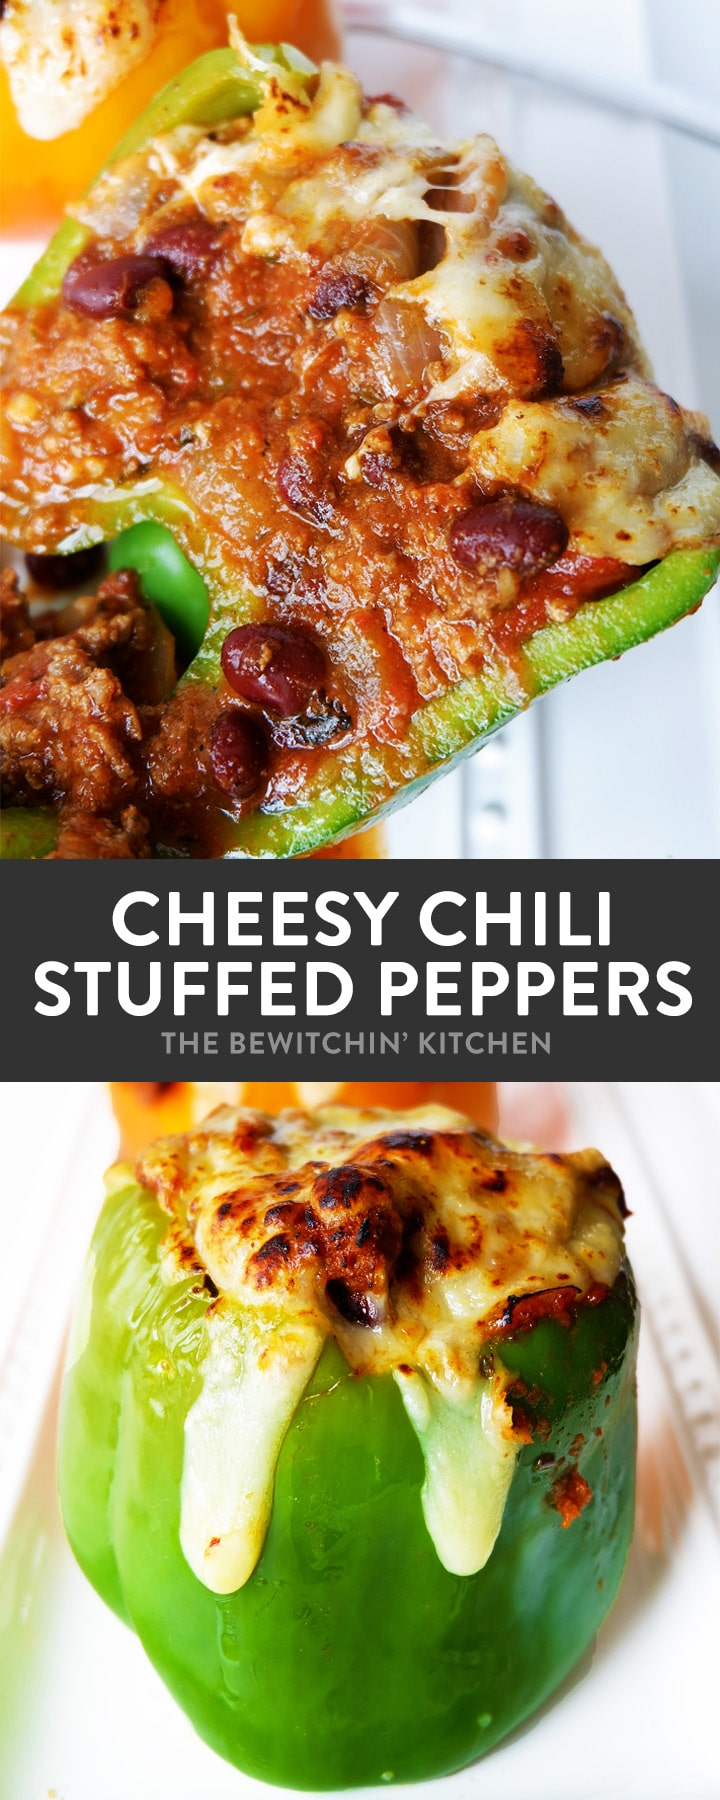 Cheesy Chili Stuffed Peppers with Monterey Jack Jalapeno Cheese. Talk about comfort food with a healthy recipe twist! This family dinner recipe is easy to throw together, especially with leftover chili!